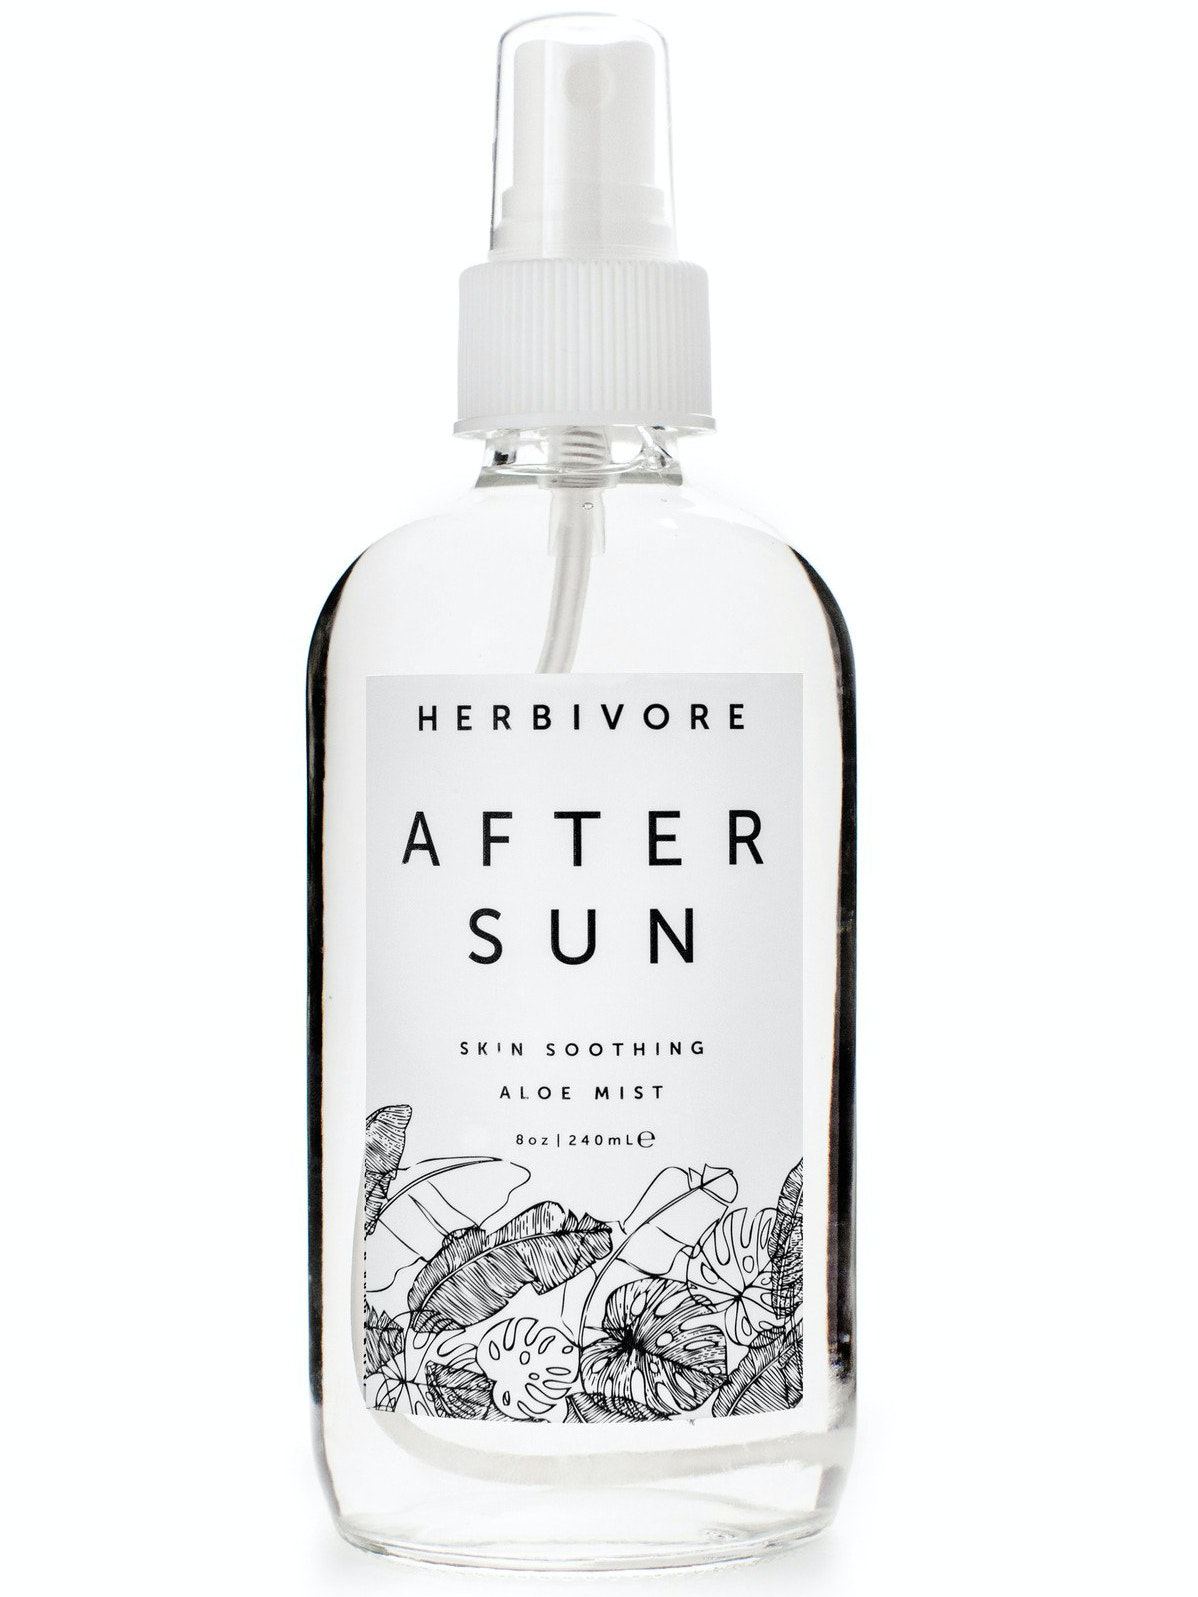 Herbivore After Sun Skin Soothing Aloe Mist